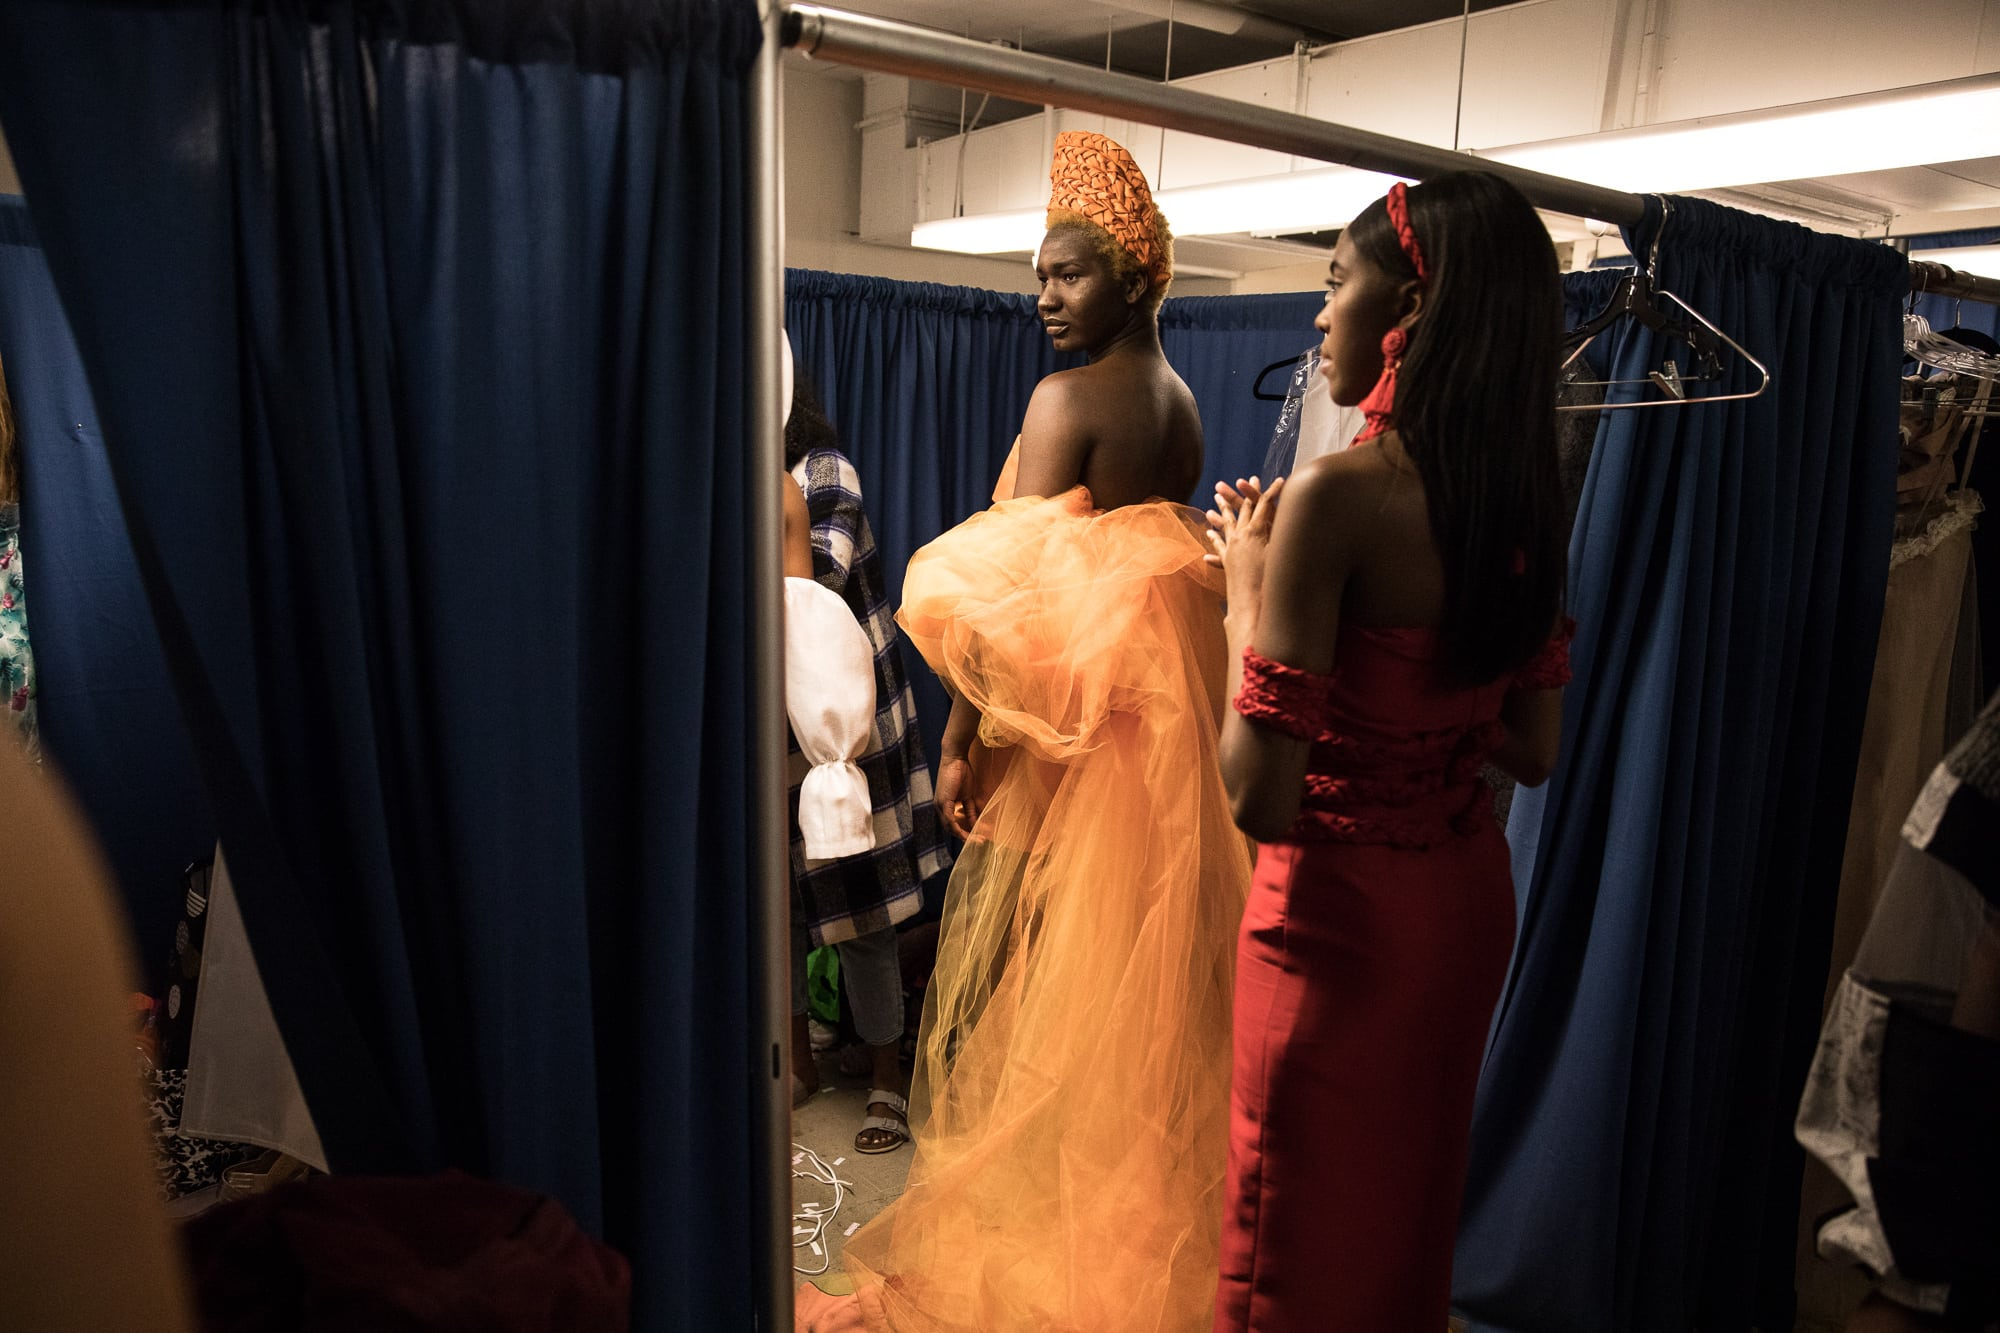 Models prepare backstage